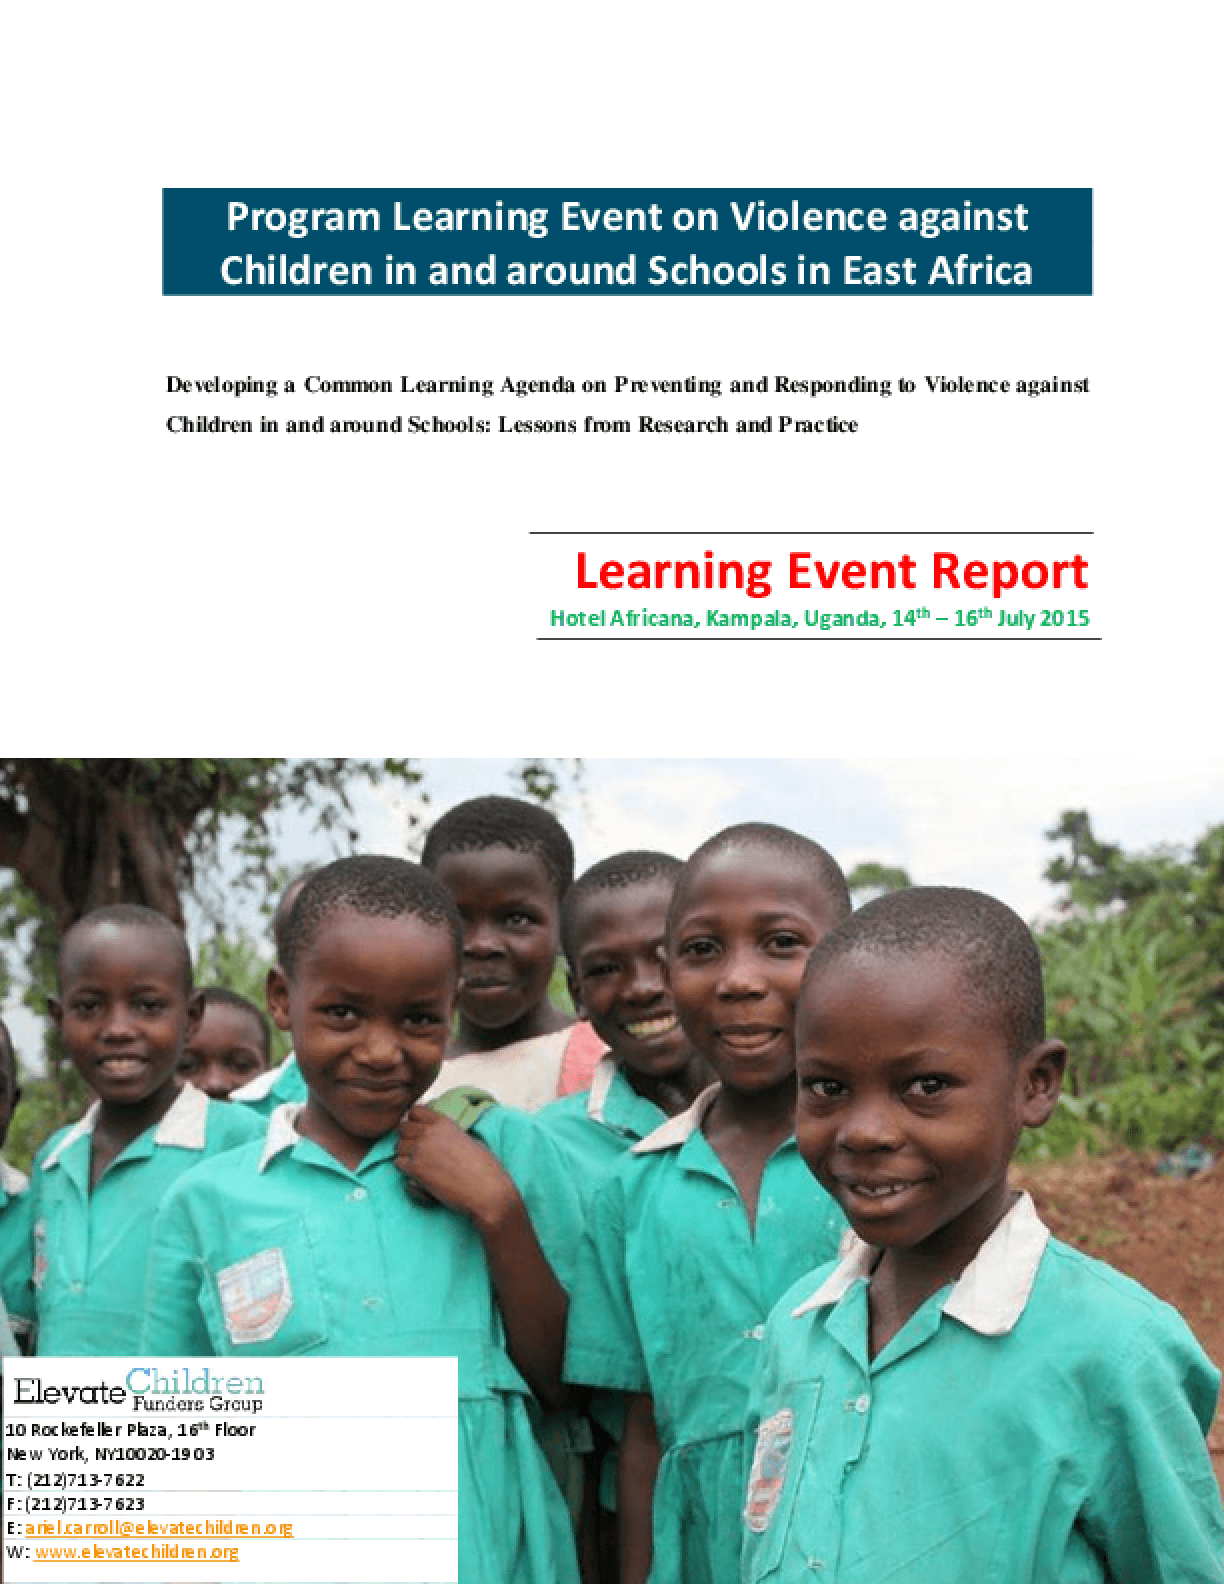 Program Learning Event on Violence against Children in and around Schools in East Africa